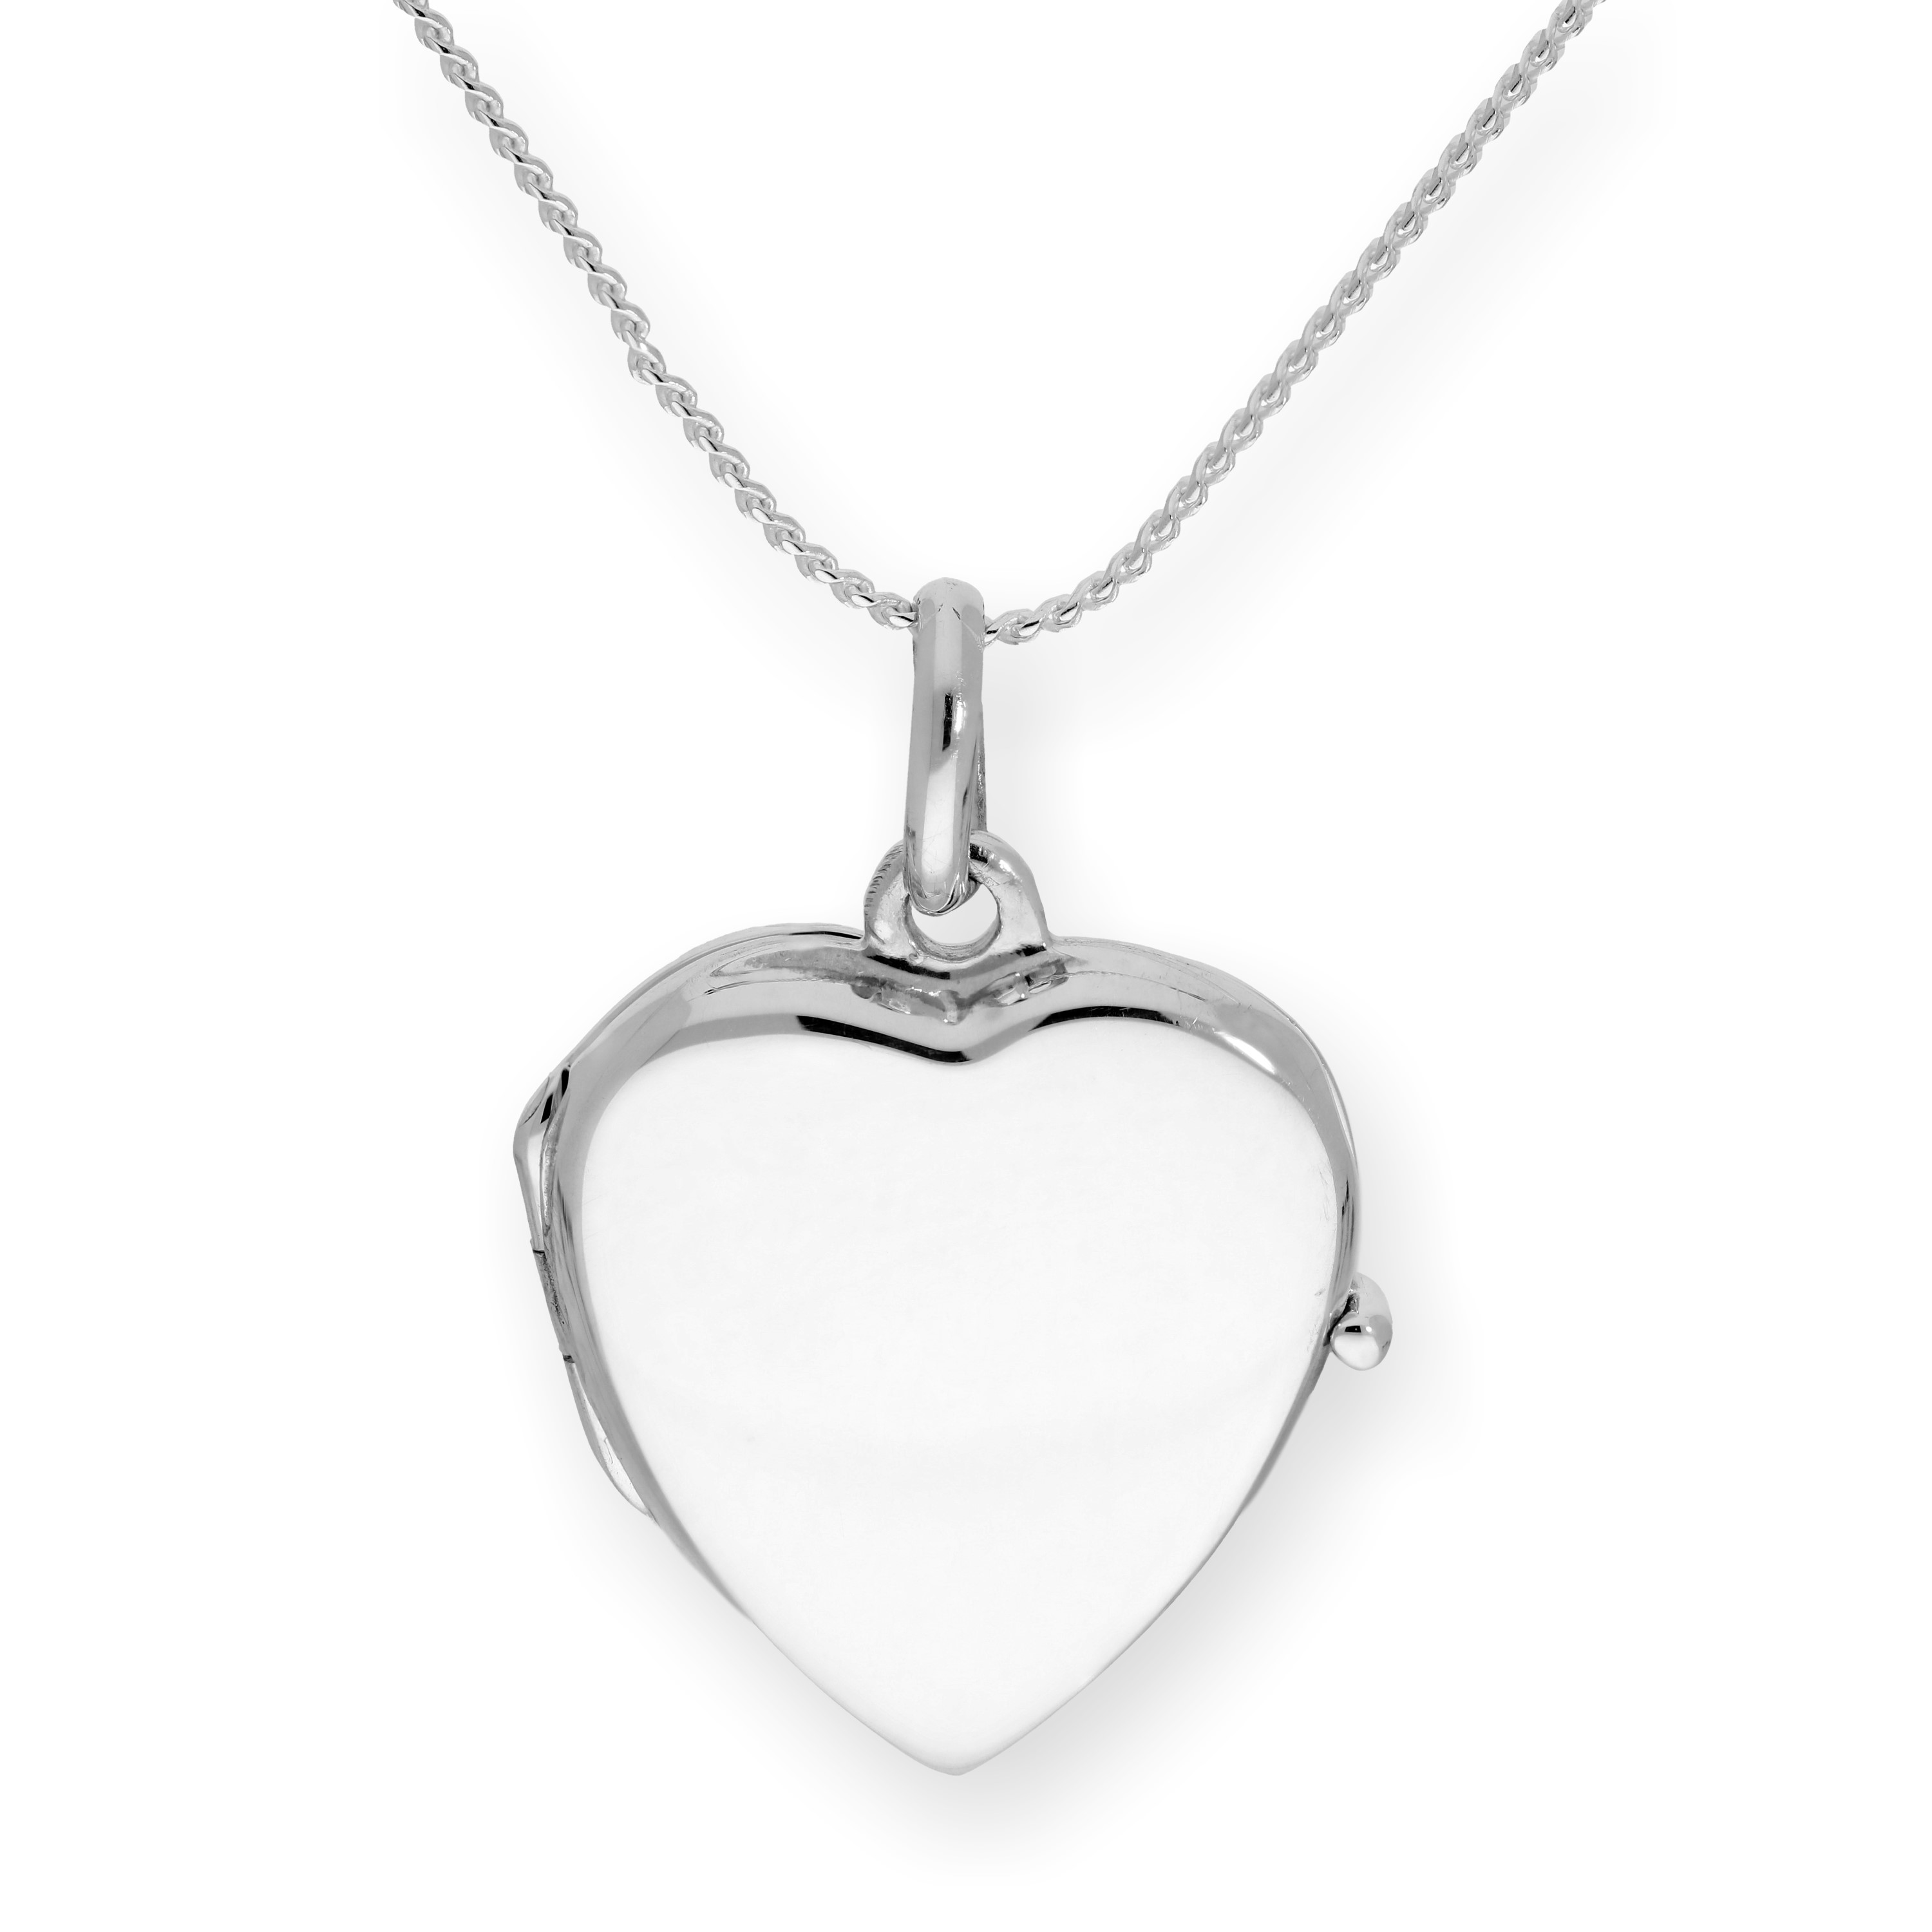 An image of Sterling Silver Engravable Heart Locket on Chain 16 - 22 Inches